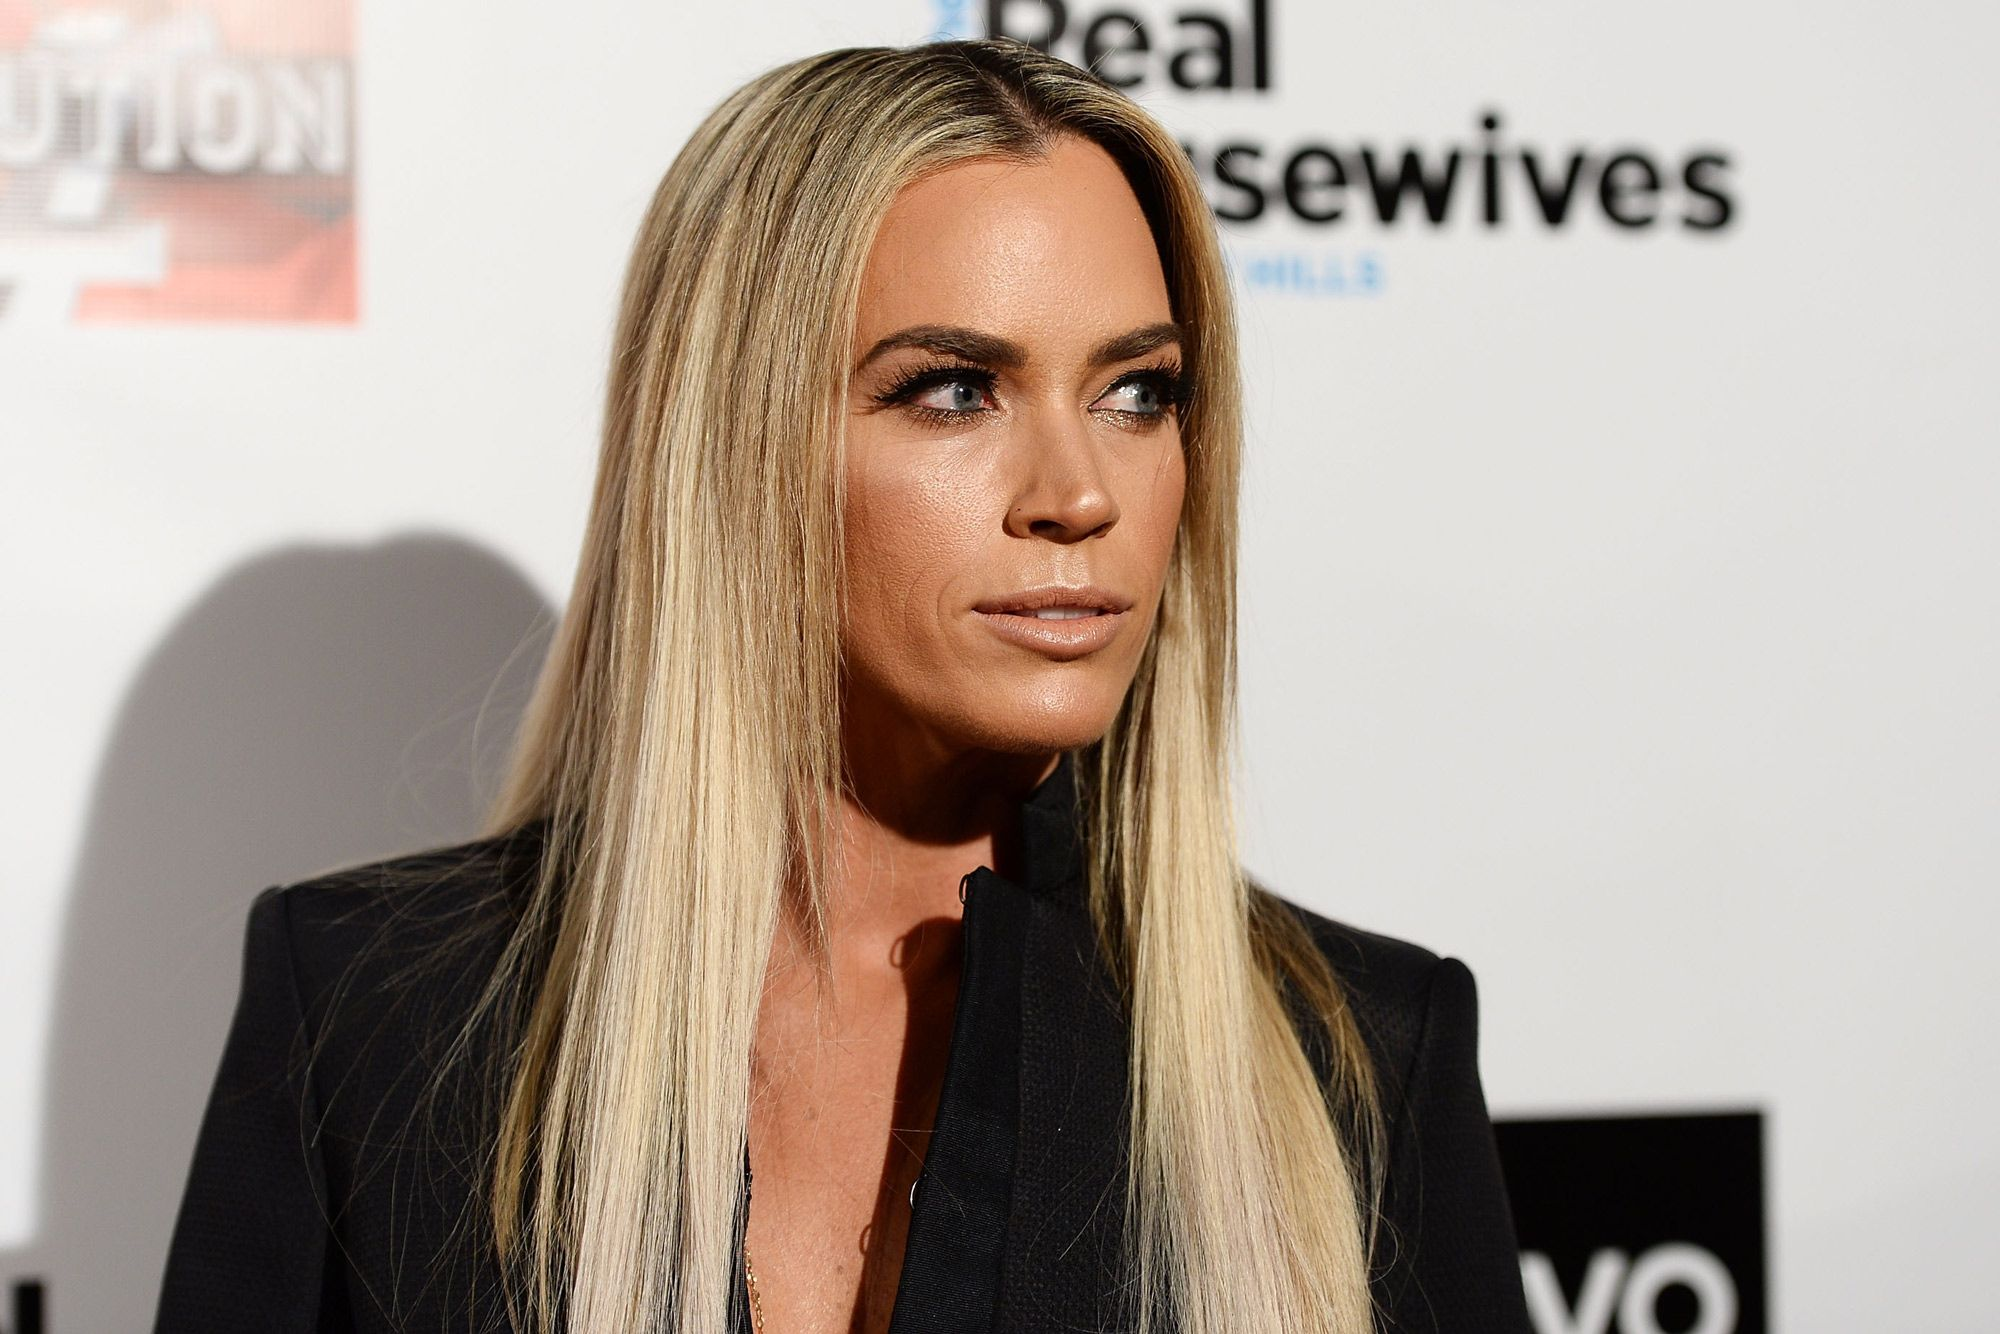 """""""teddi-mellencamp-may-be-getting-the-axe-from-rhobh-for-being-too-boring-after-her-dangerous-diet-program-gets-exposed"""""""